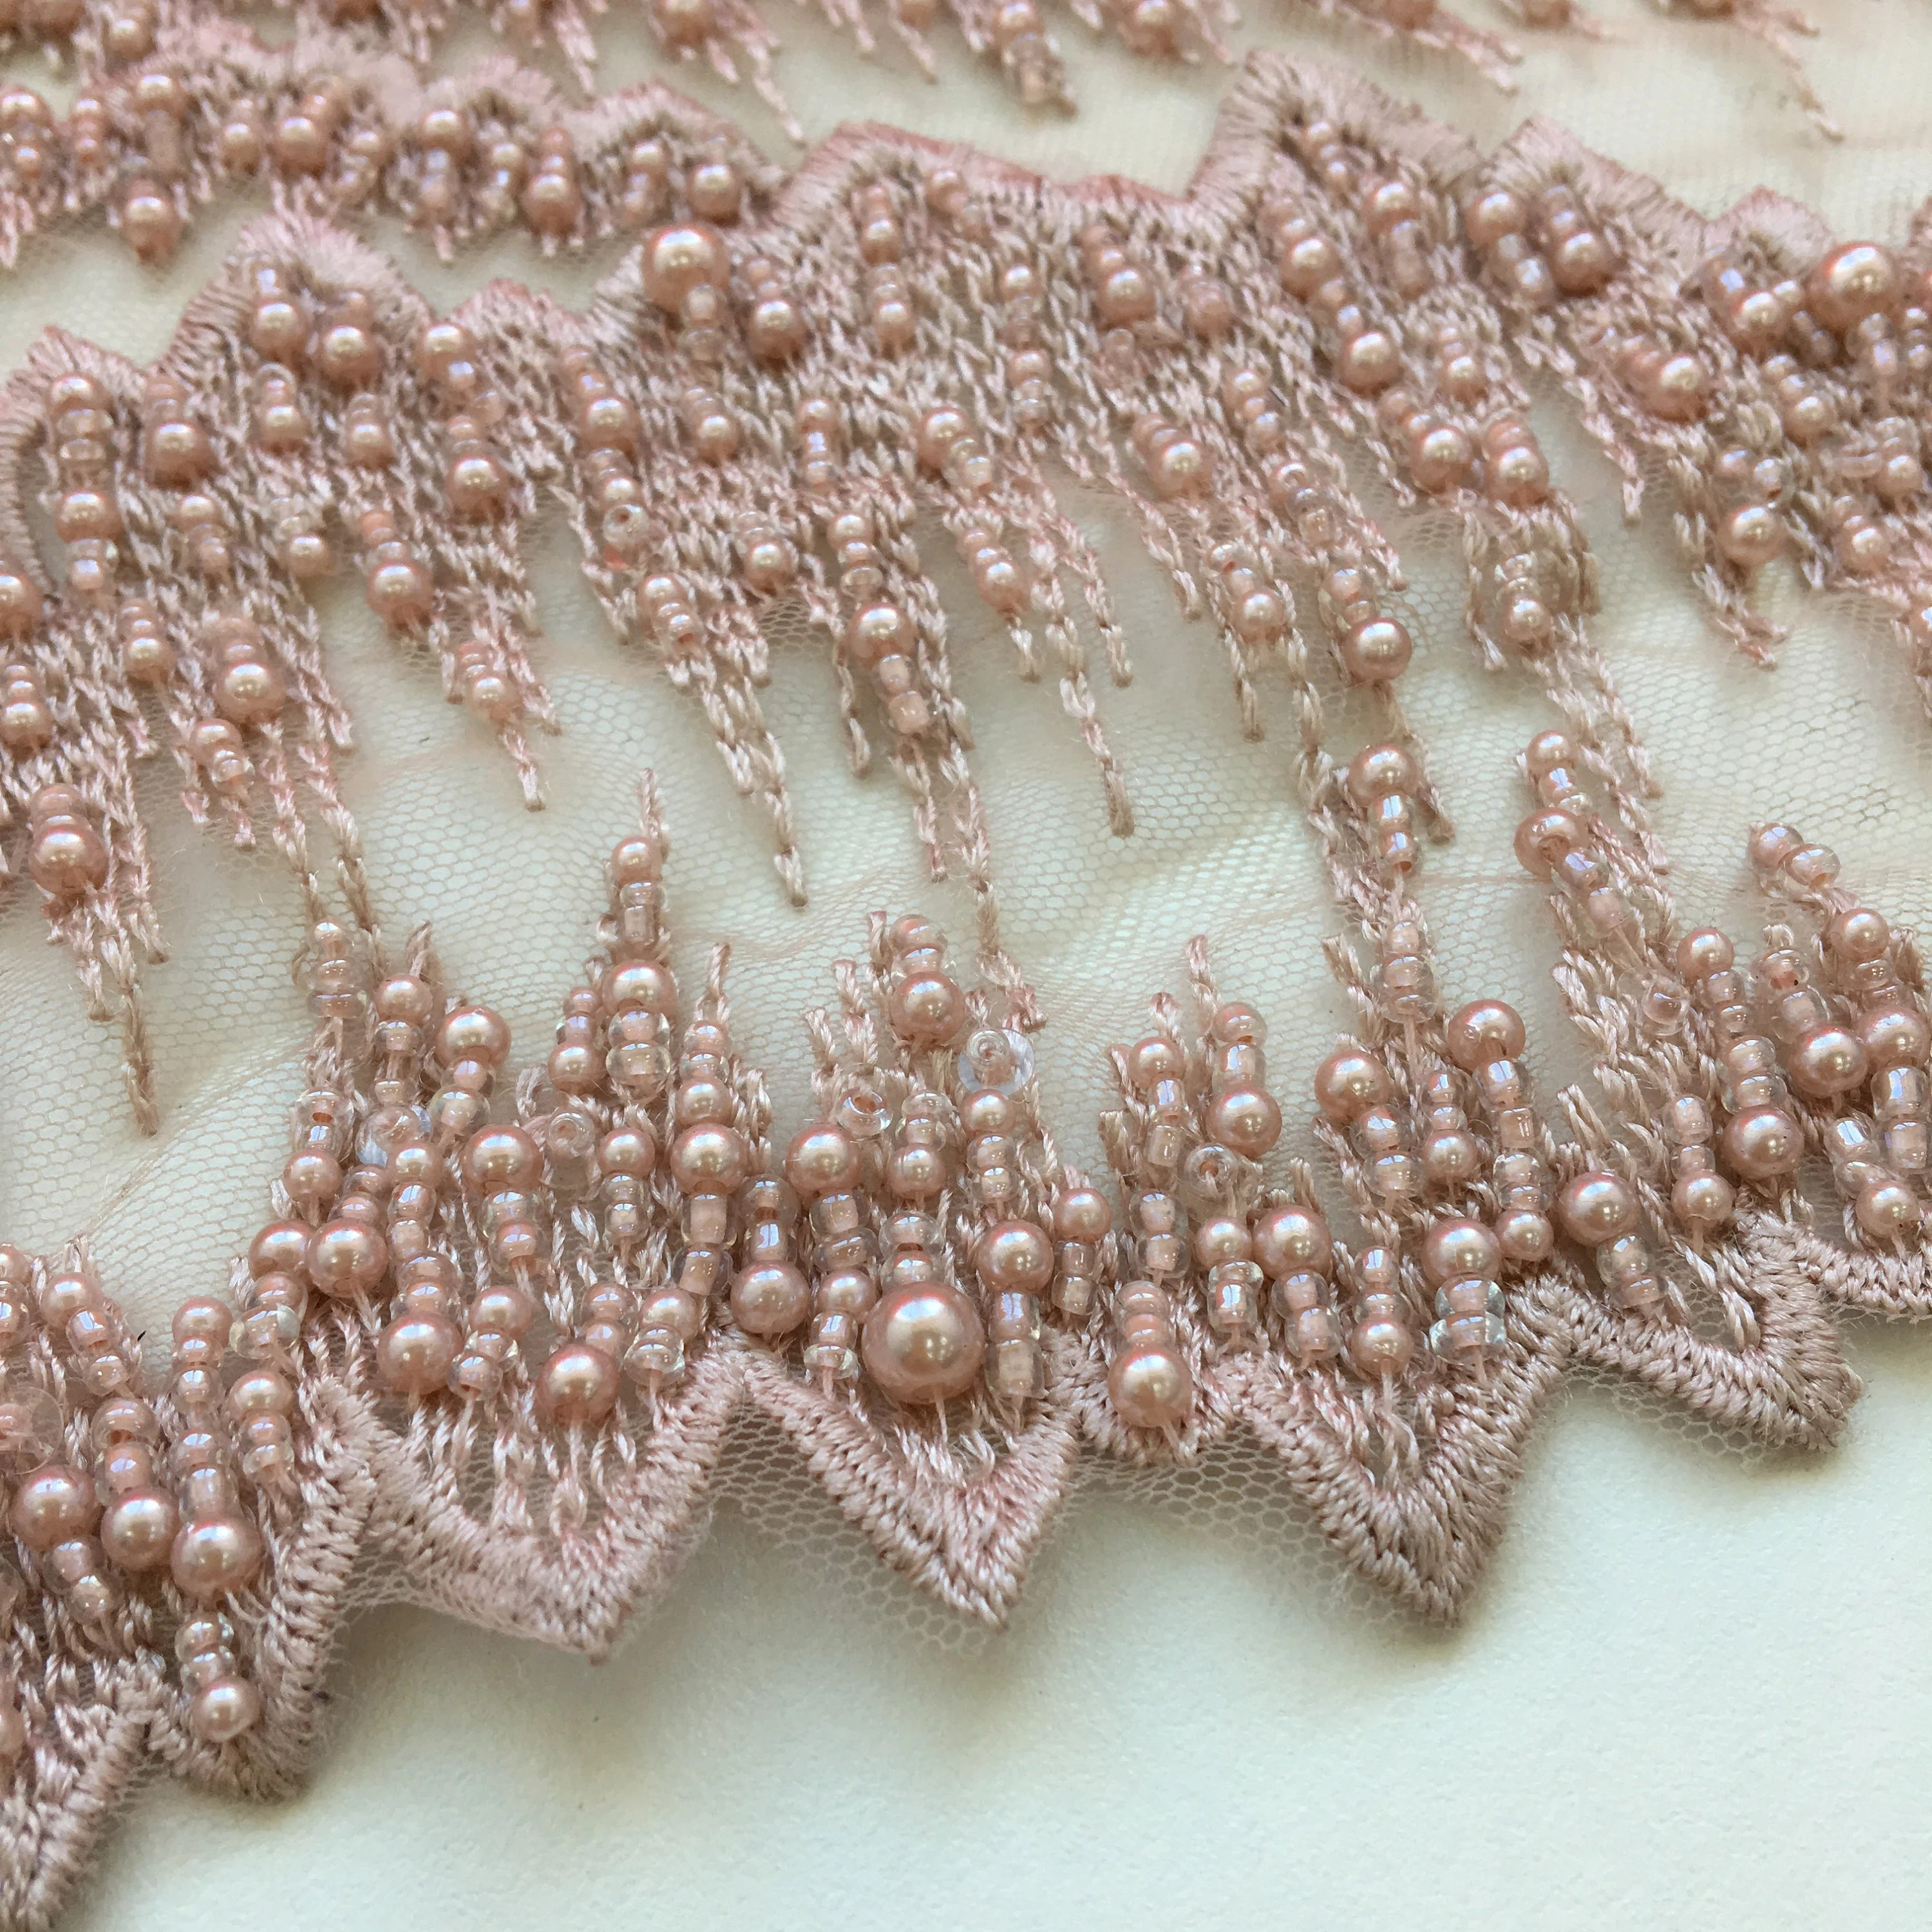 Stoff Spitze 3d Old Pink Wedding Lace Fabric Ao 000130 3d Spitze Stoff 3d Dirty Rose Embroidered Beads For High Fashion Dresses Handmade Pearl Beads